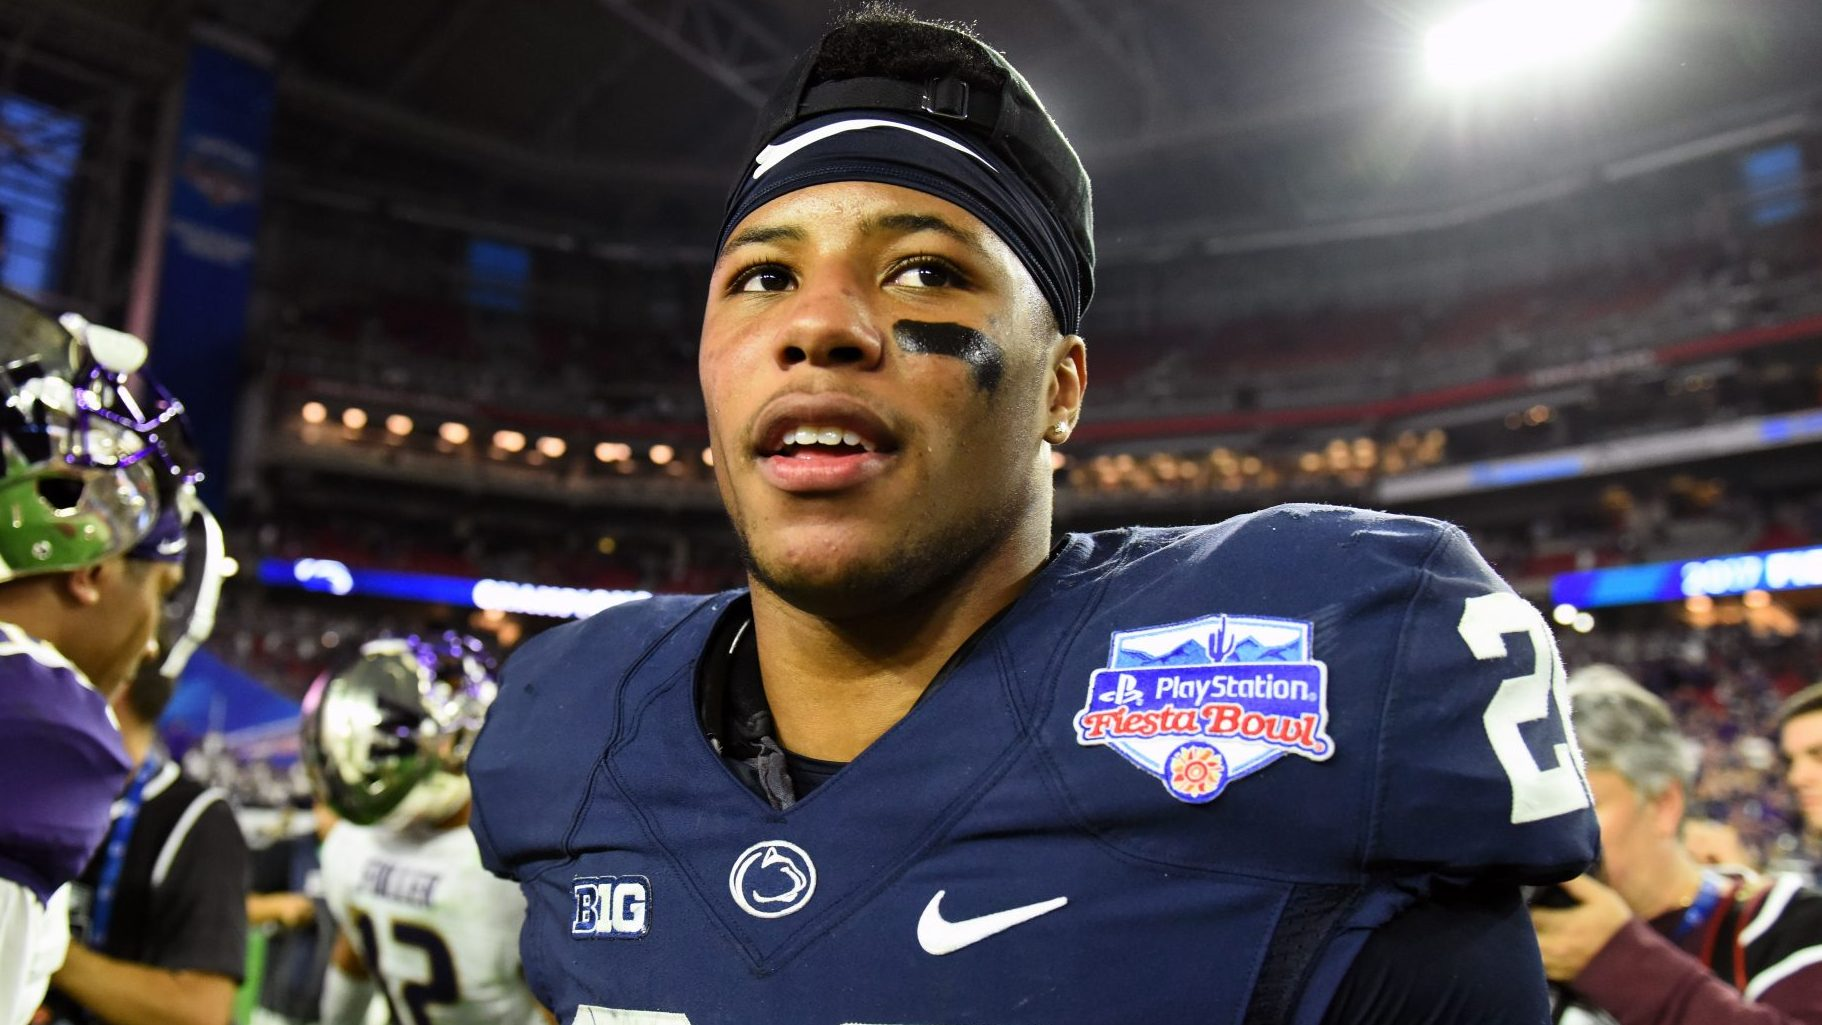 Penn State's Barkley excited to become father